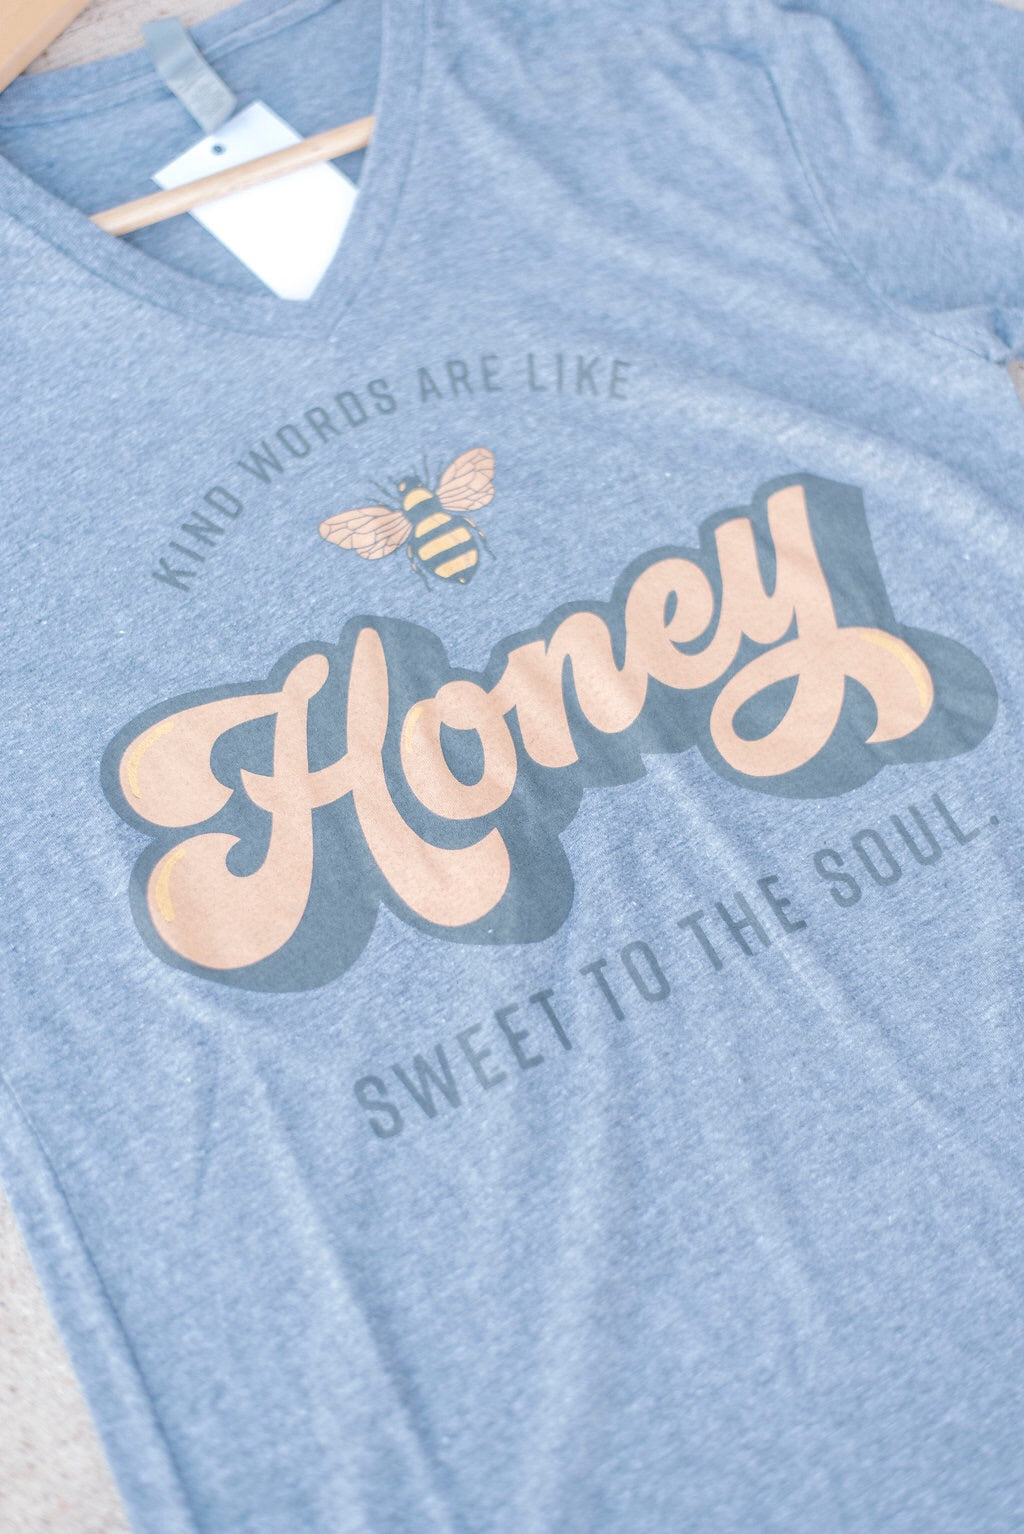 Kind Words Are Like Honey Shirt